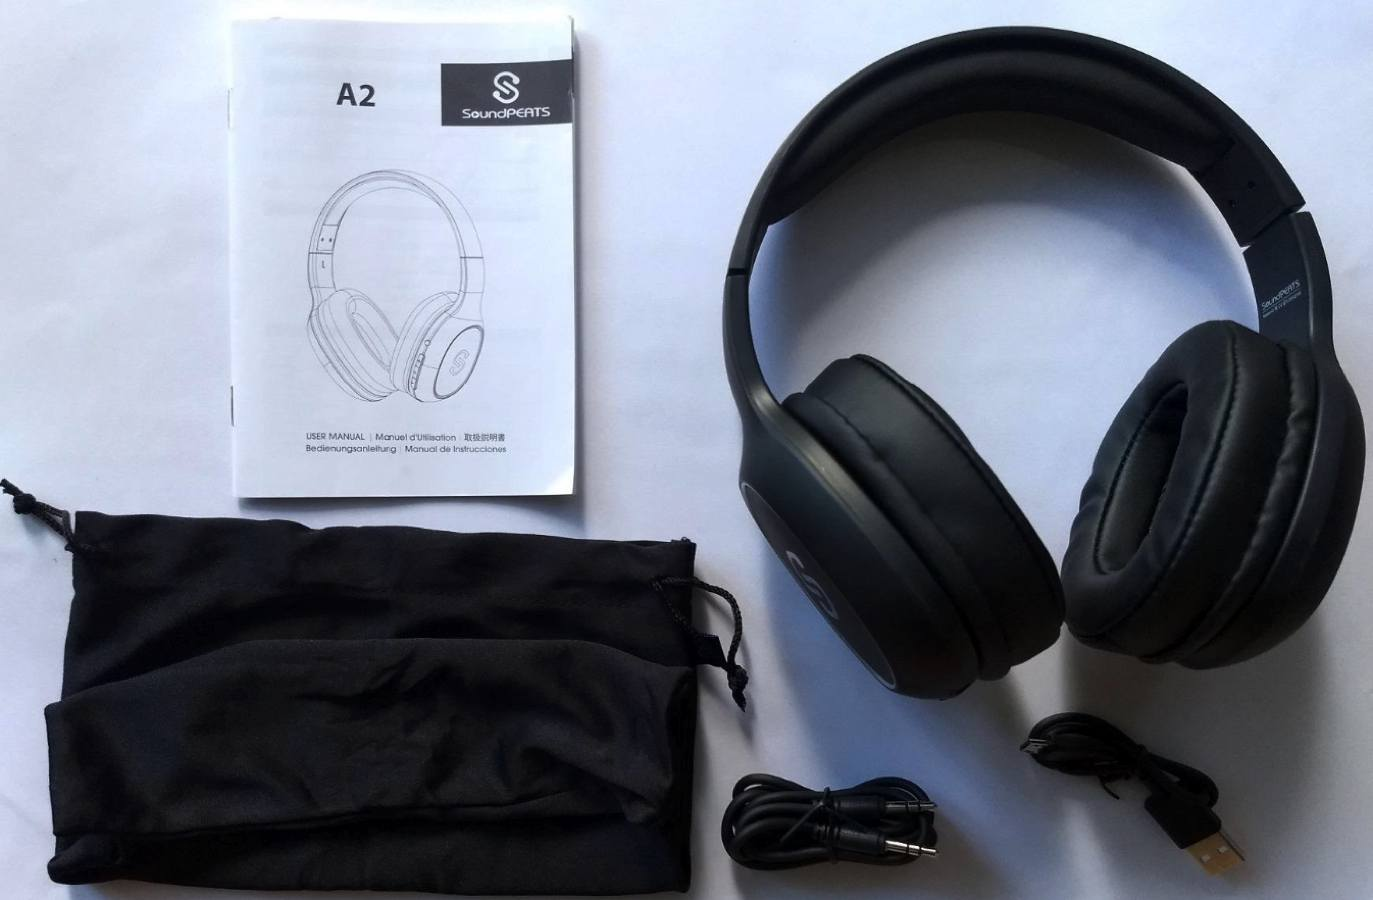 Soundpeats A2 Bluetooth Headphones Headphone Reviews And Discussion Head Fi Org